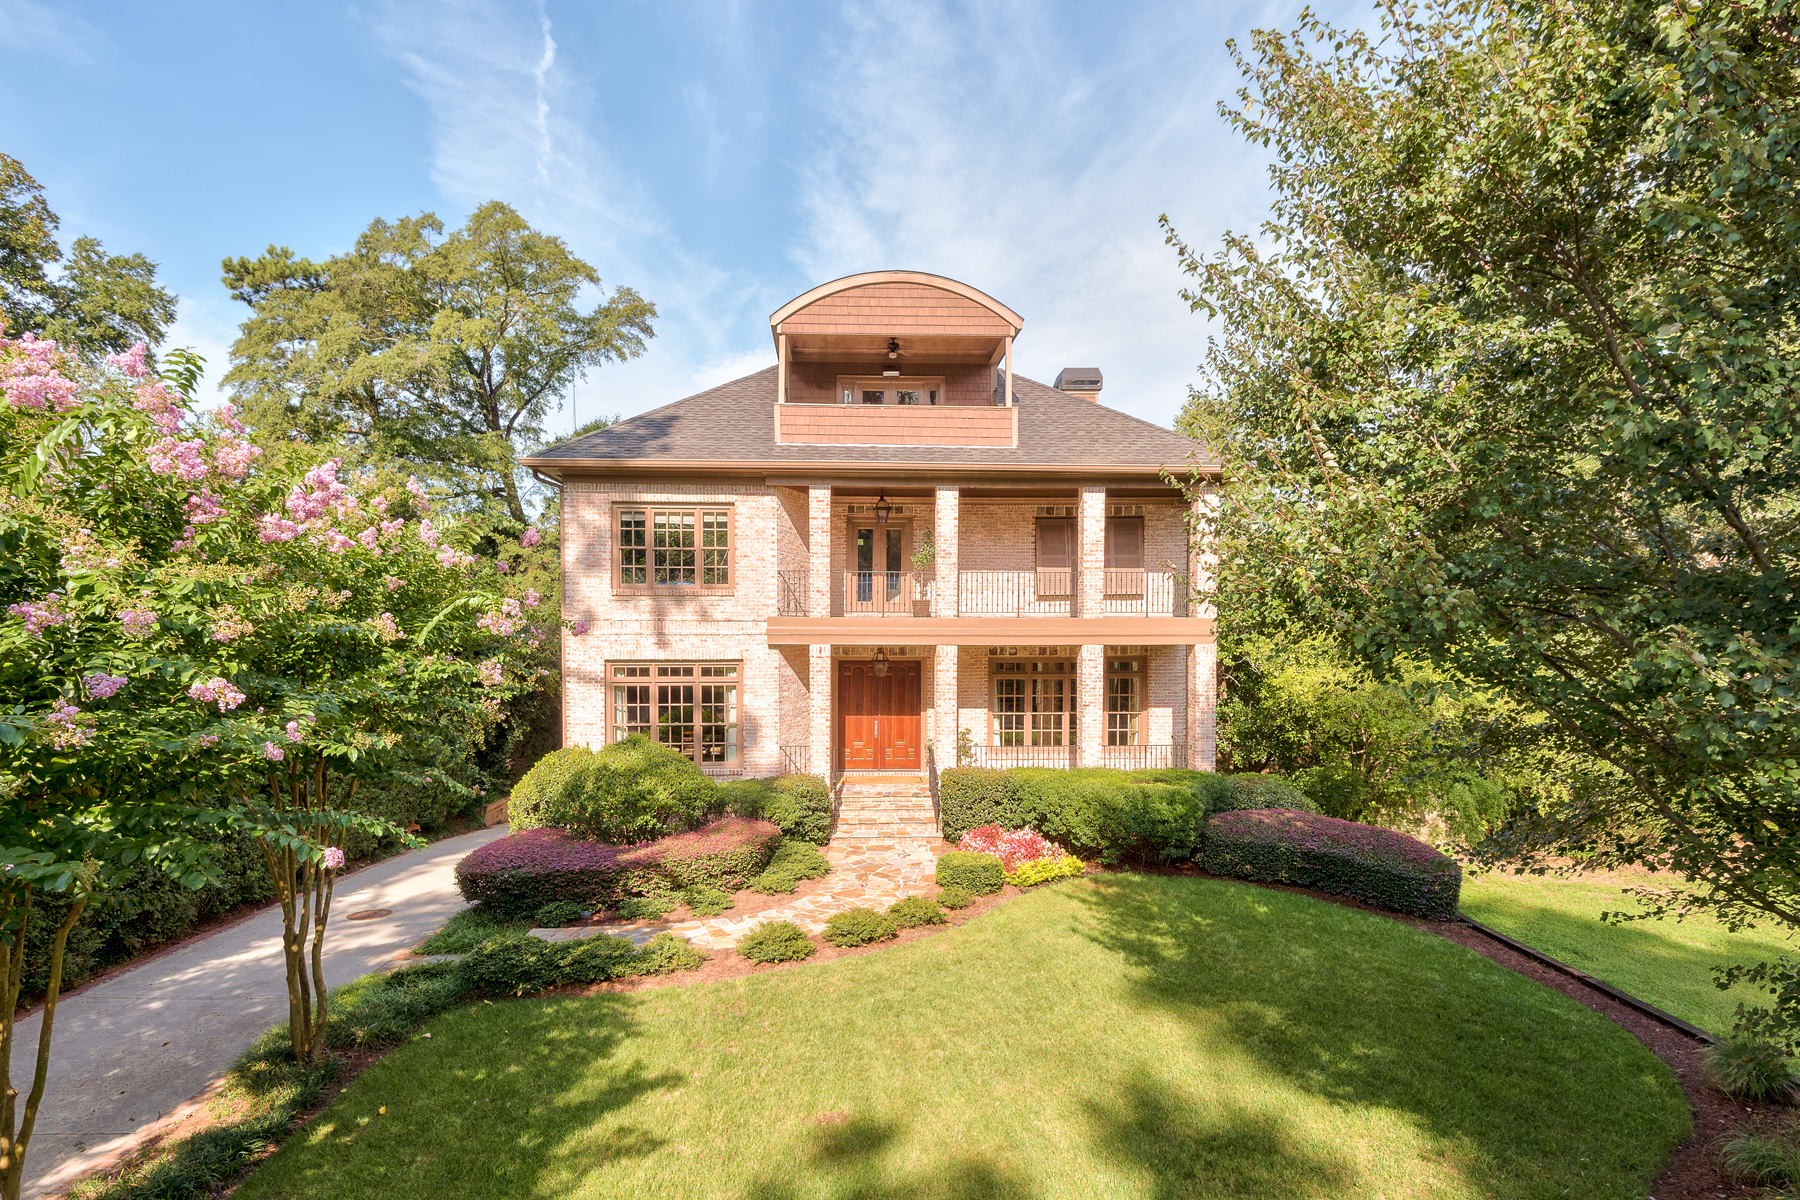 Villa per Vendita alle ore All Brick Home Sitting On Over One Third Acre In Brookhaven Heights 2294 Matthews Street NE Atlanta, Georgia 30319 Stati Uniti